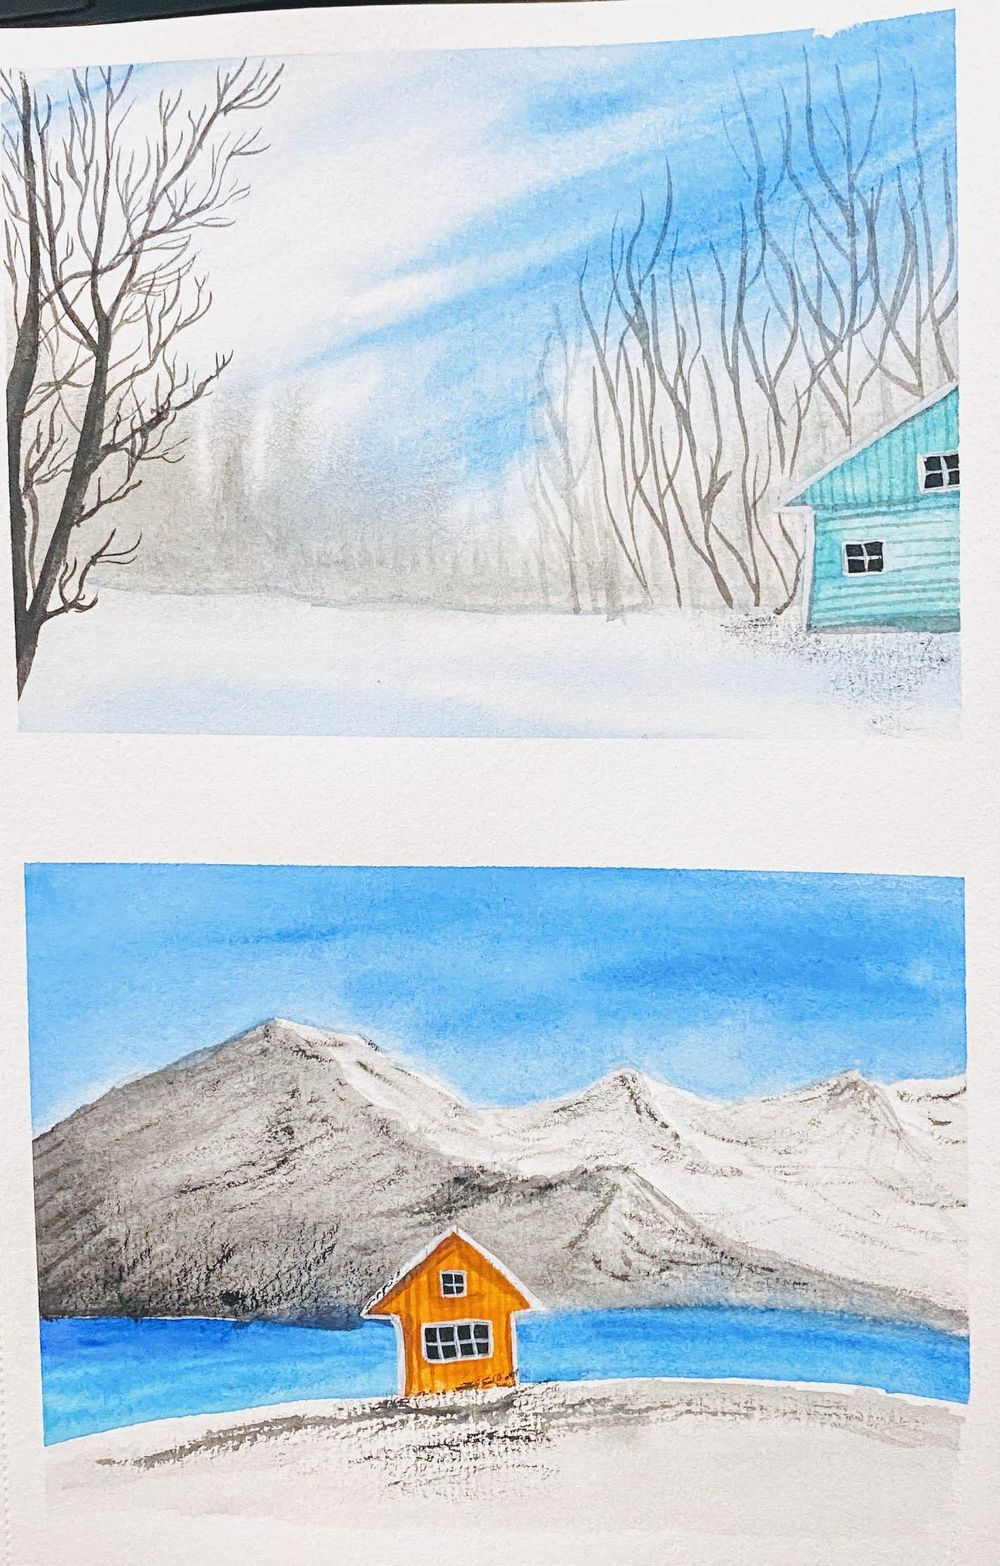 Learnt so much about painting snow - image 2 - student project